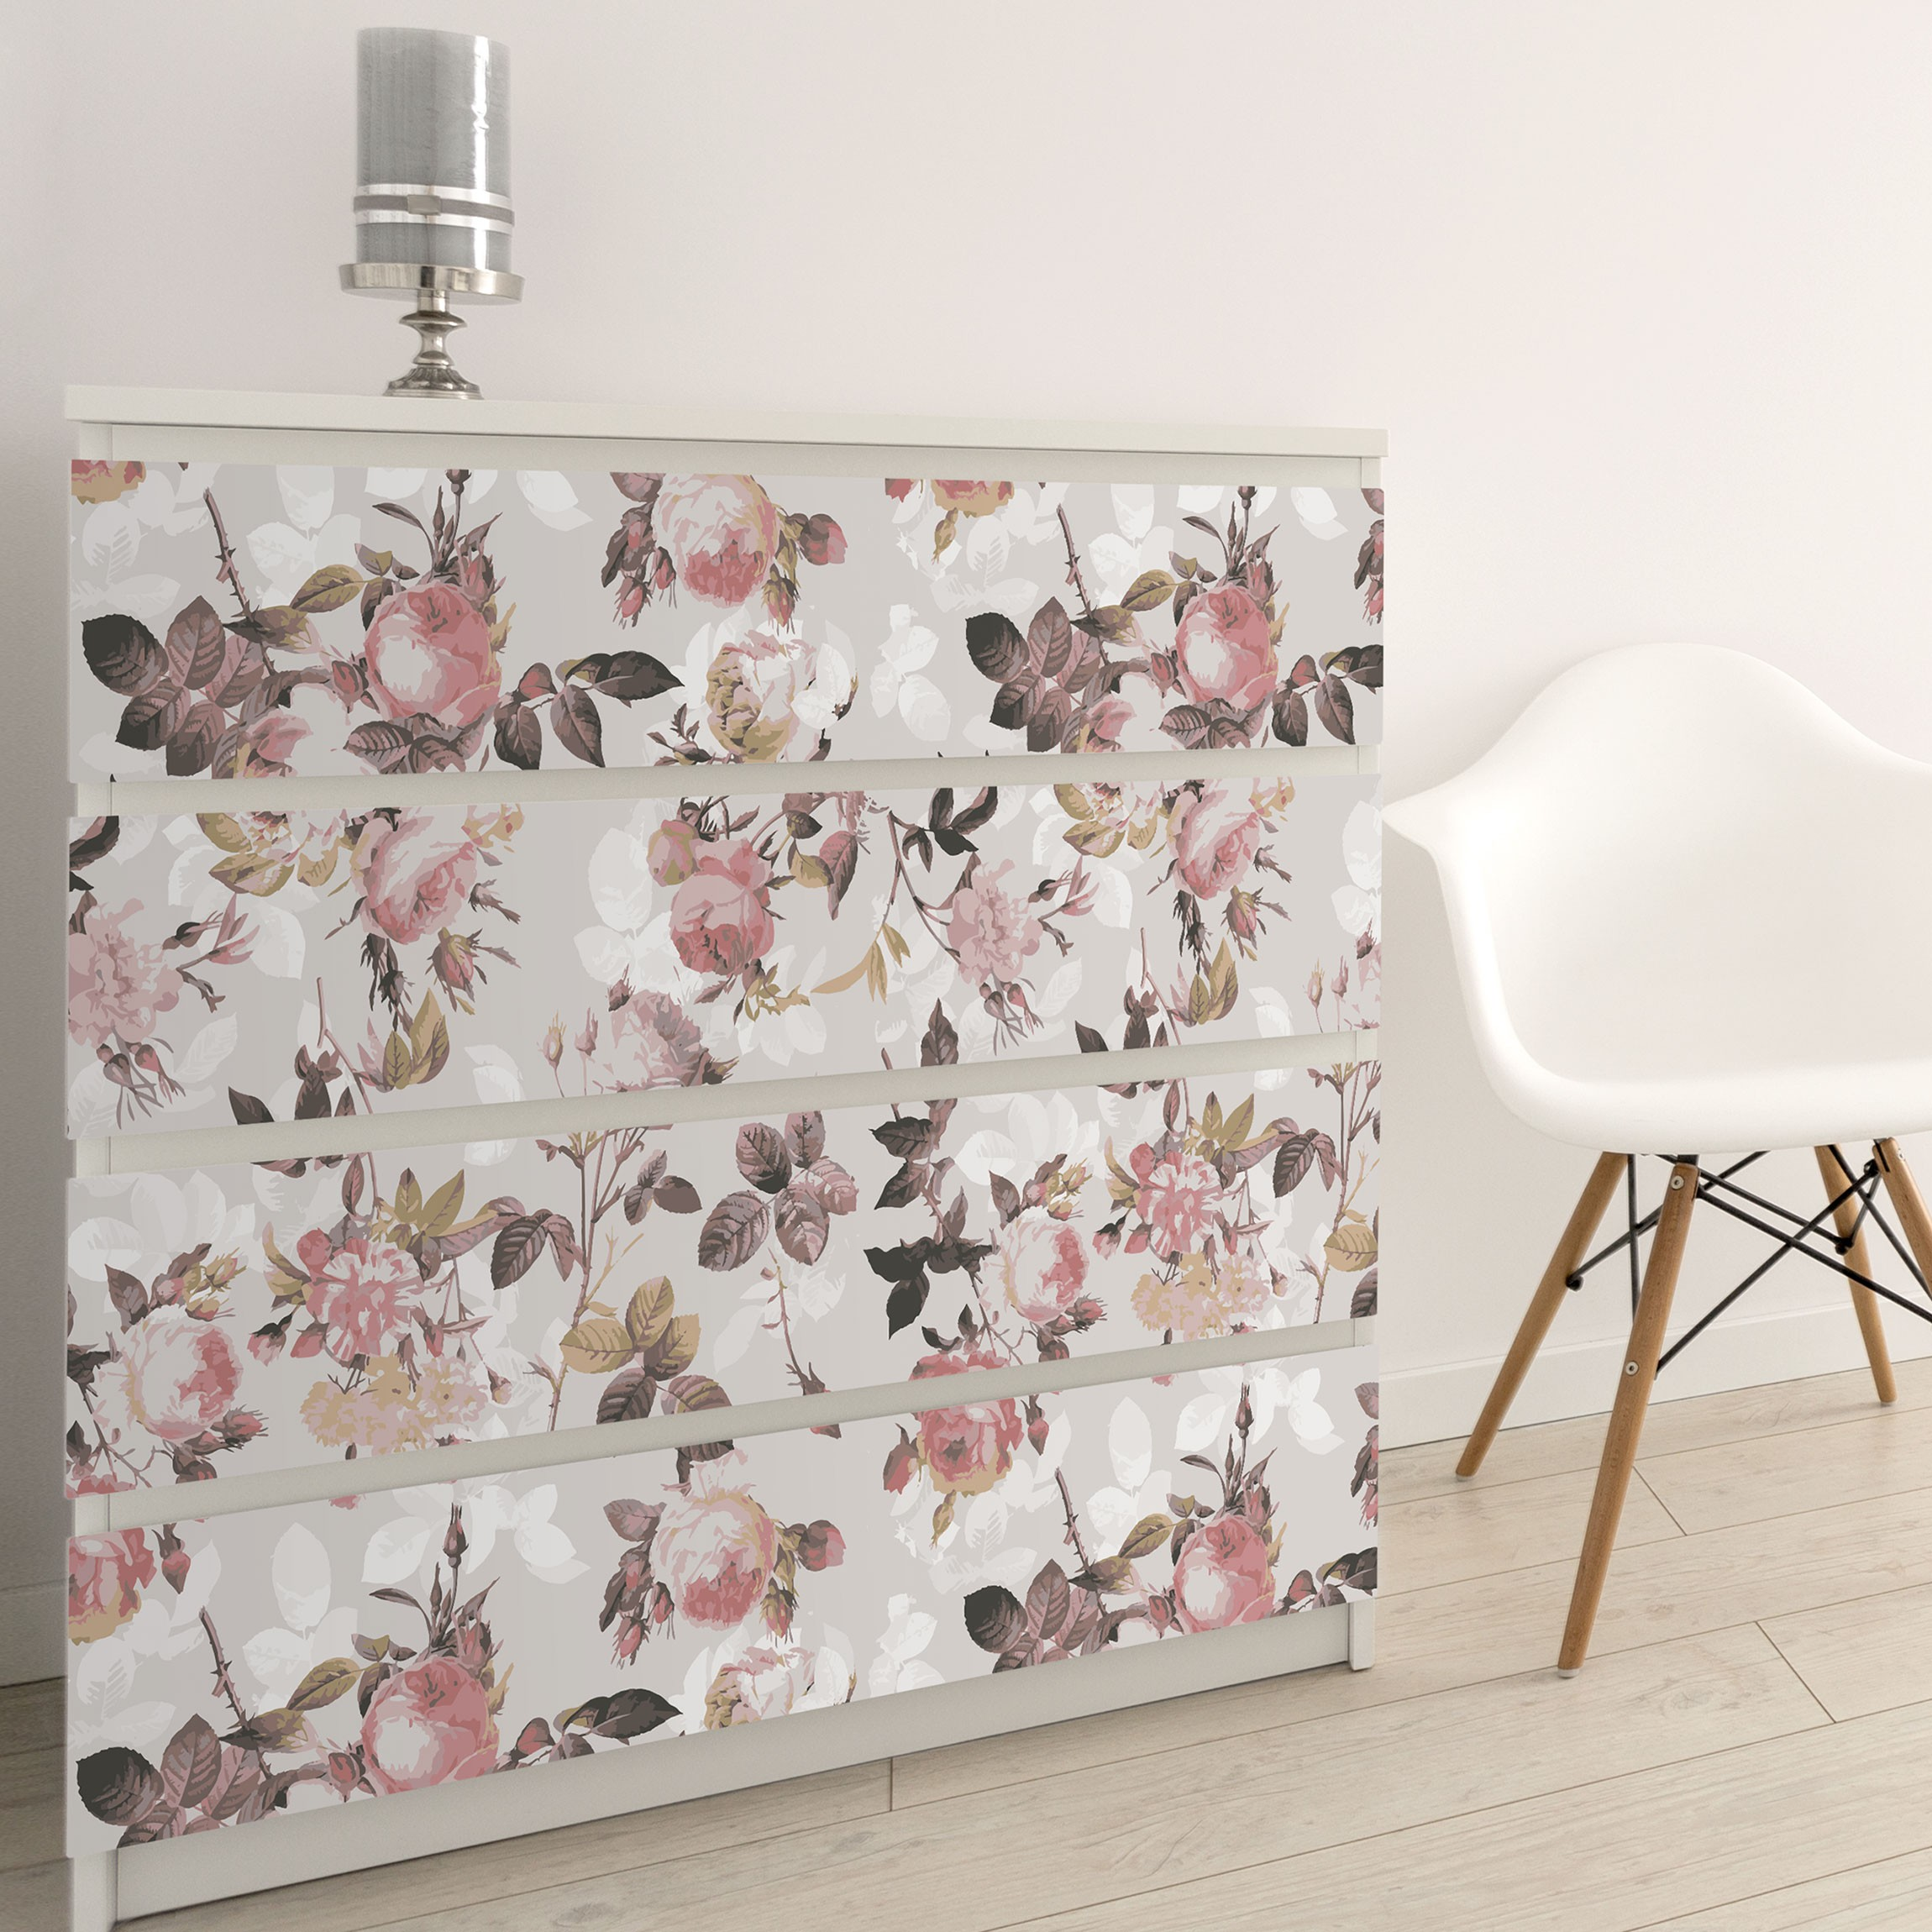 Carta Adesiva per Mobili - Vintage floral pattern with roses